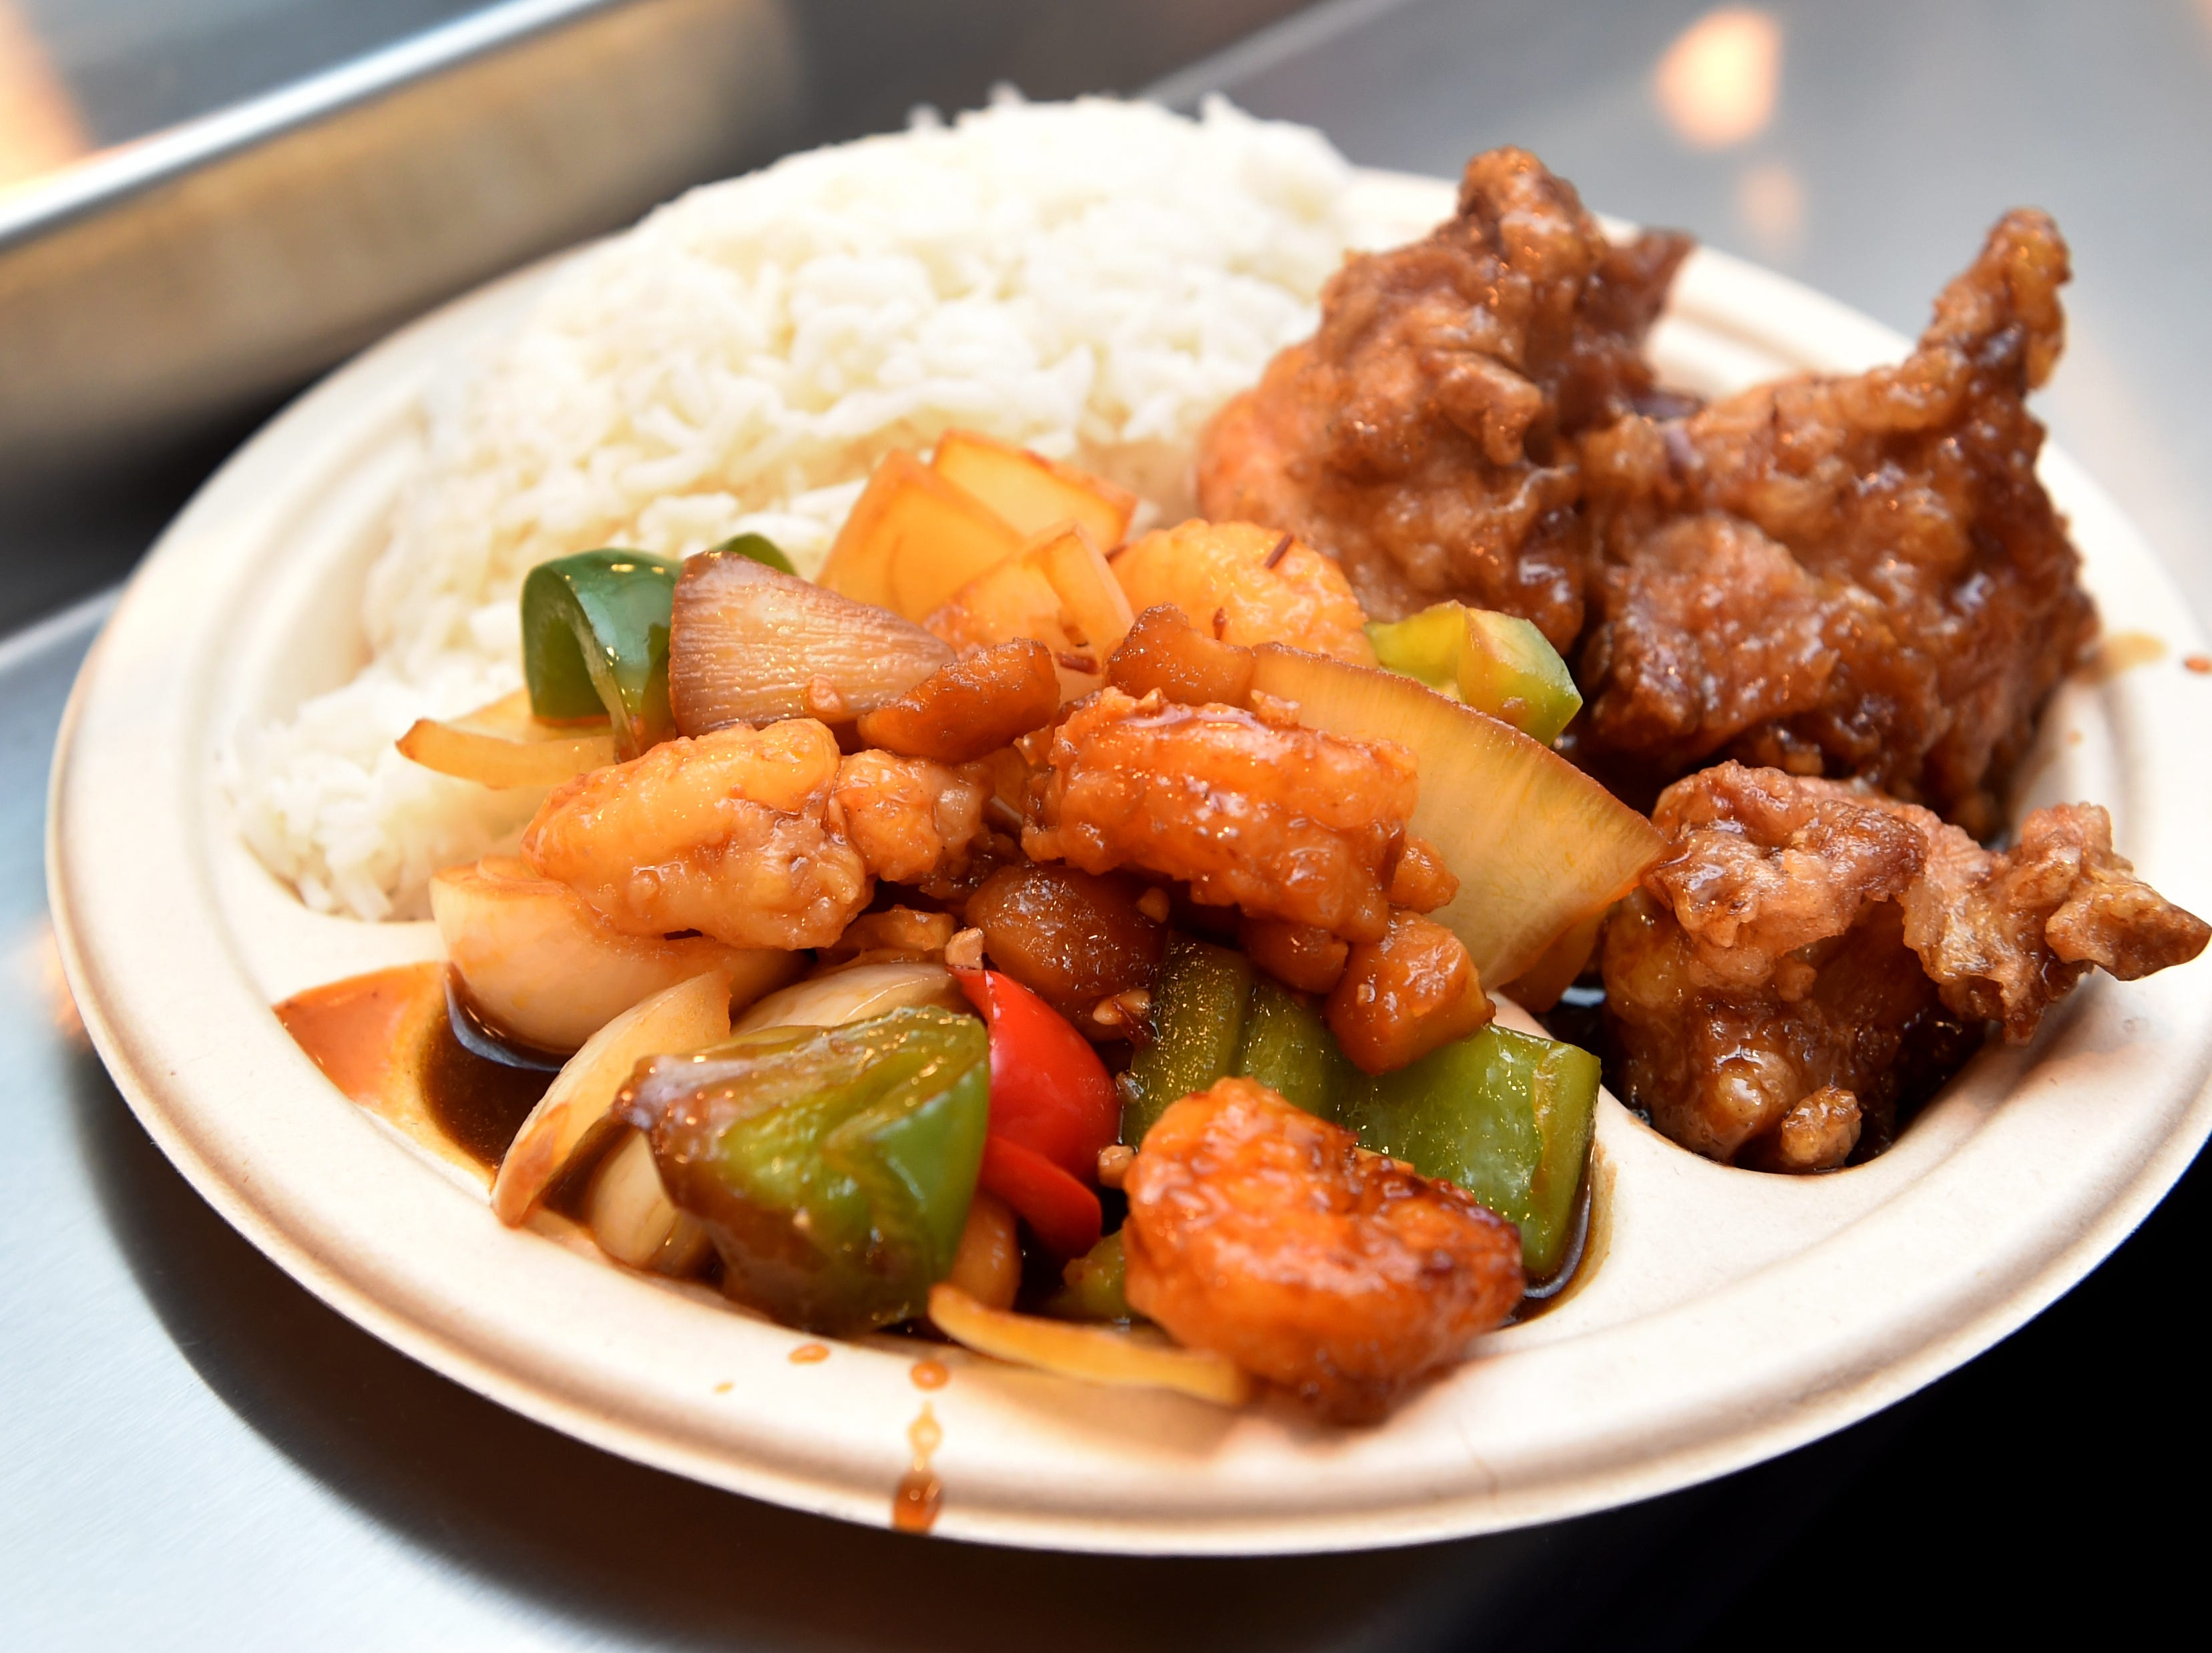 Shrimp with Vegetables and Spicy Chicken Wings are among the menu items at Seven Spice Kitchen in Newbury Park.